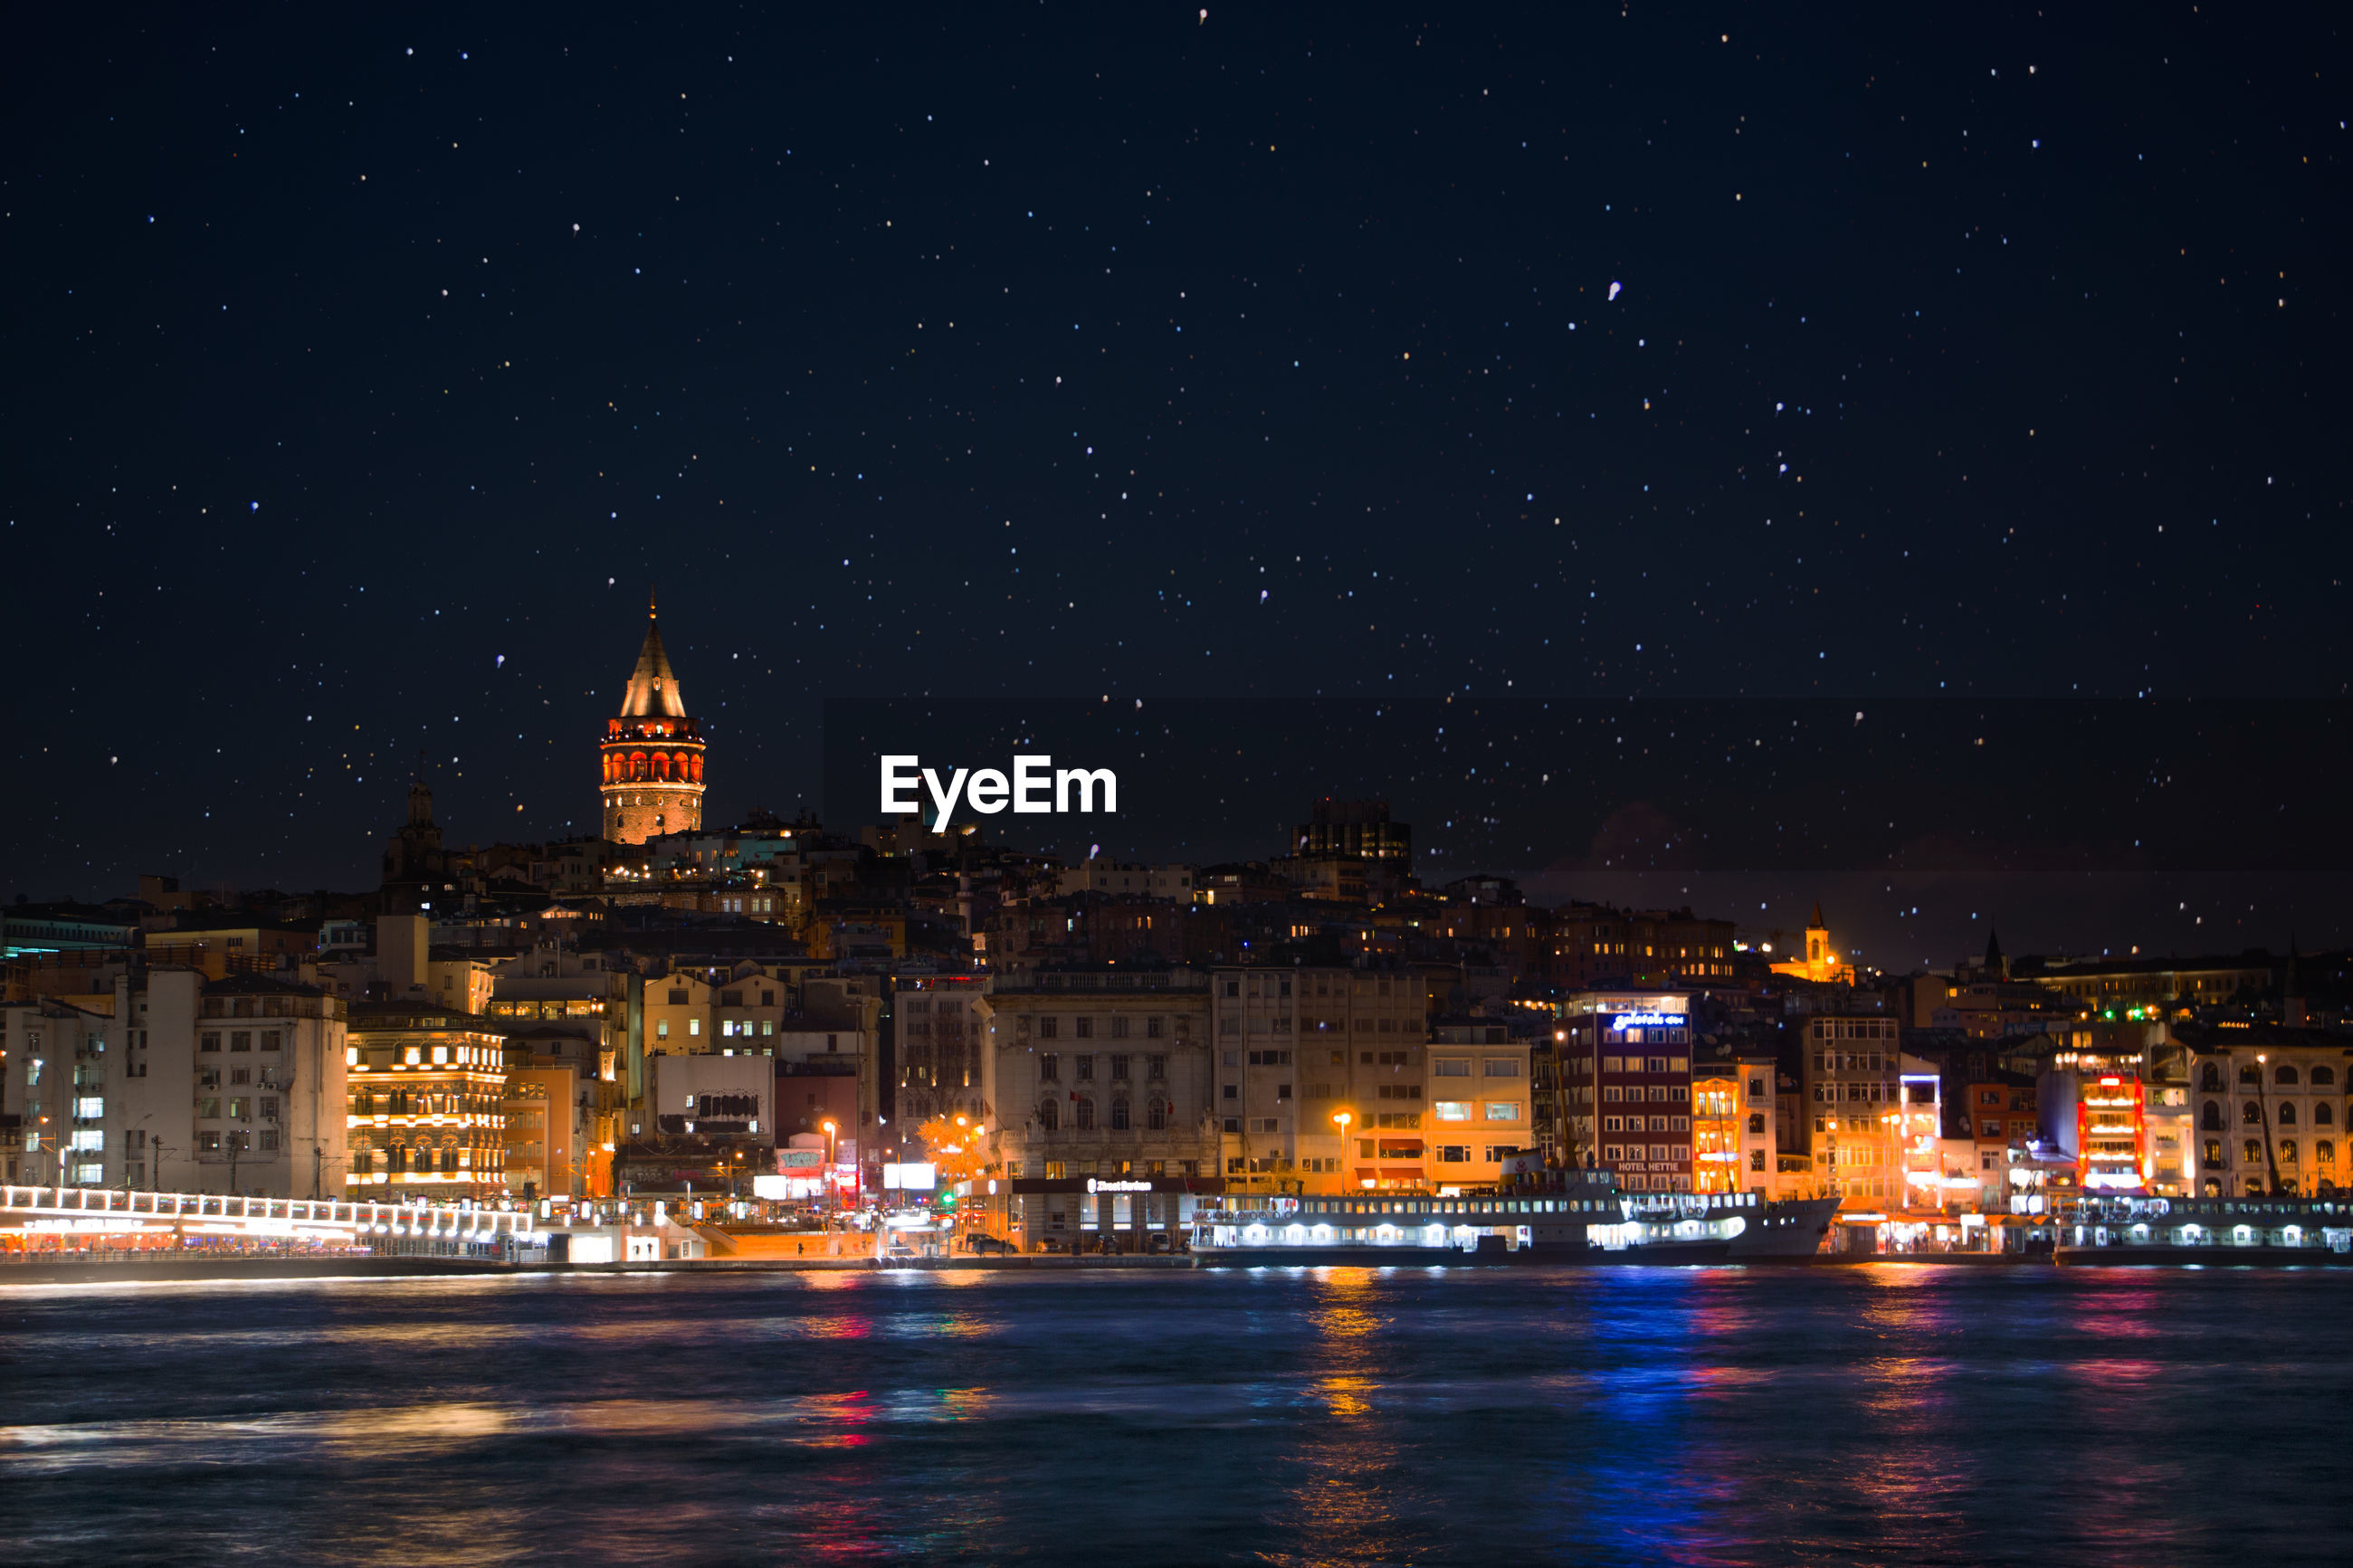 Illuminated city by river against star field at night